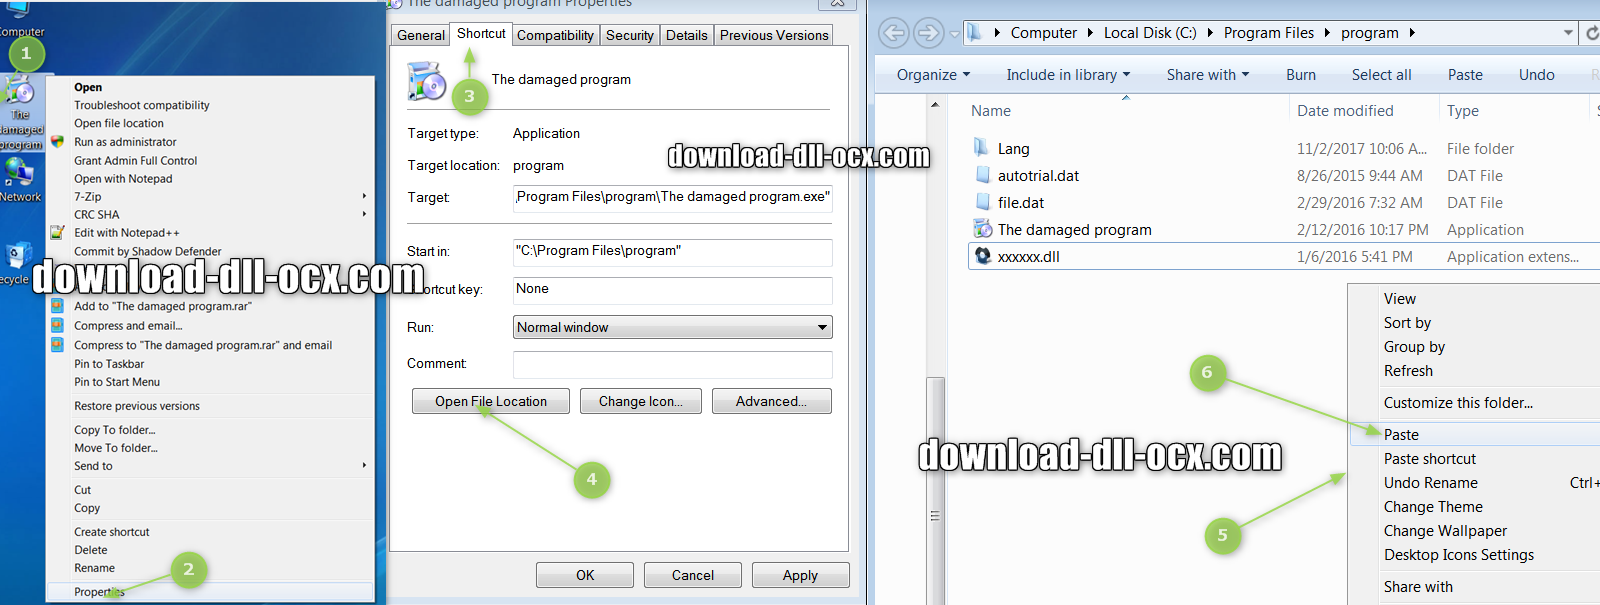 how to install Microsoft.VisualBasic.dll file? for fix missing